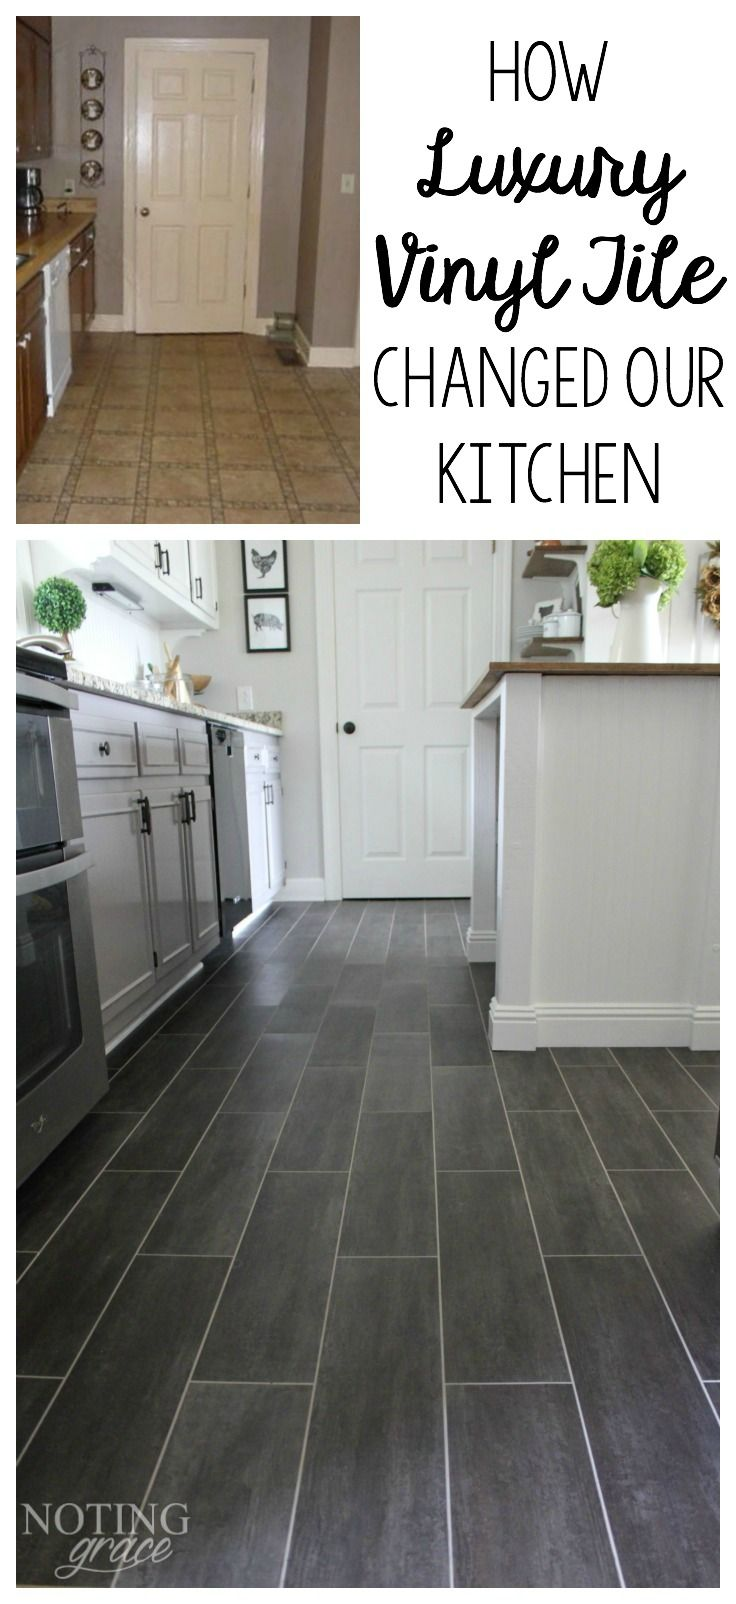 Bathroom floor vinyl tiles - Diy Kitchen Flooring